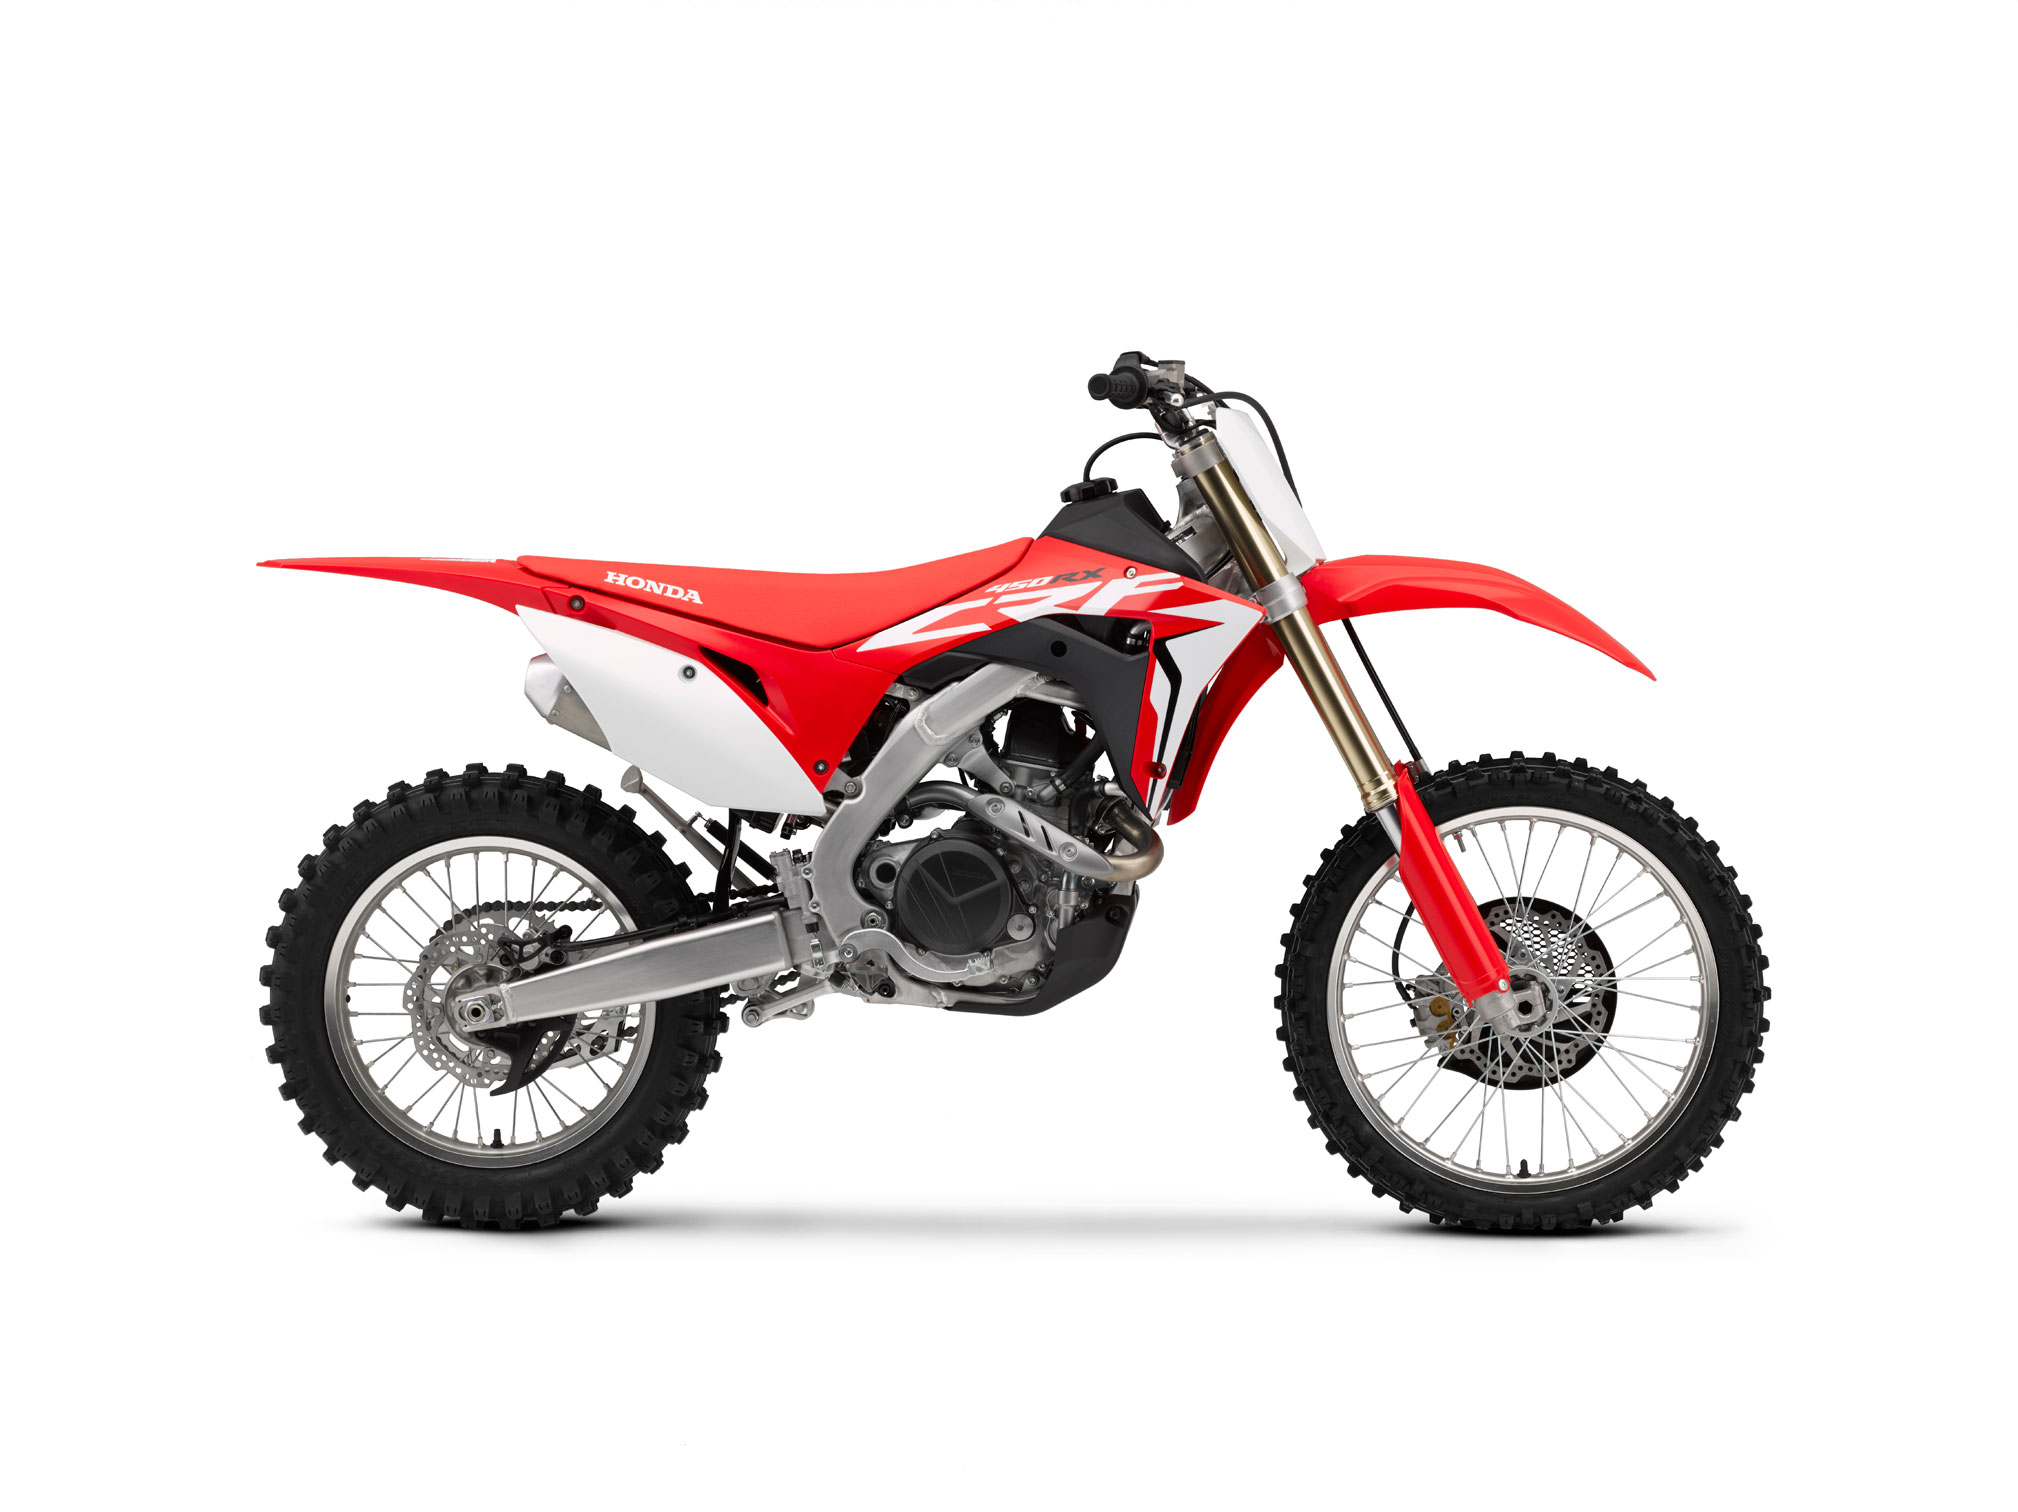 2018 Honda CRF450RX Review - TotalMotorcycle